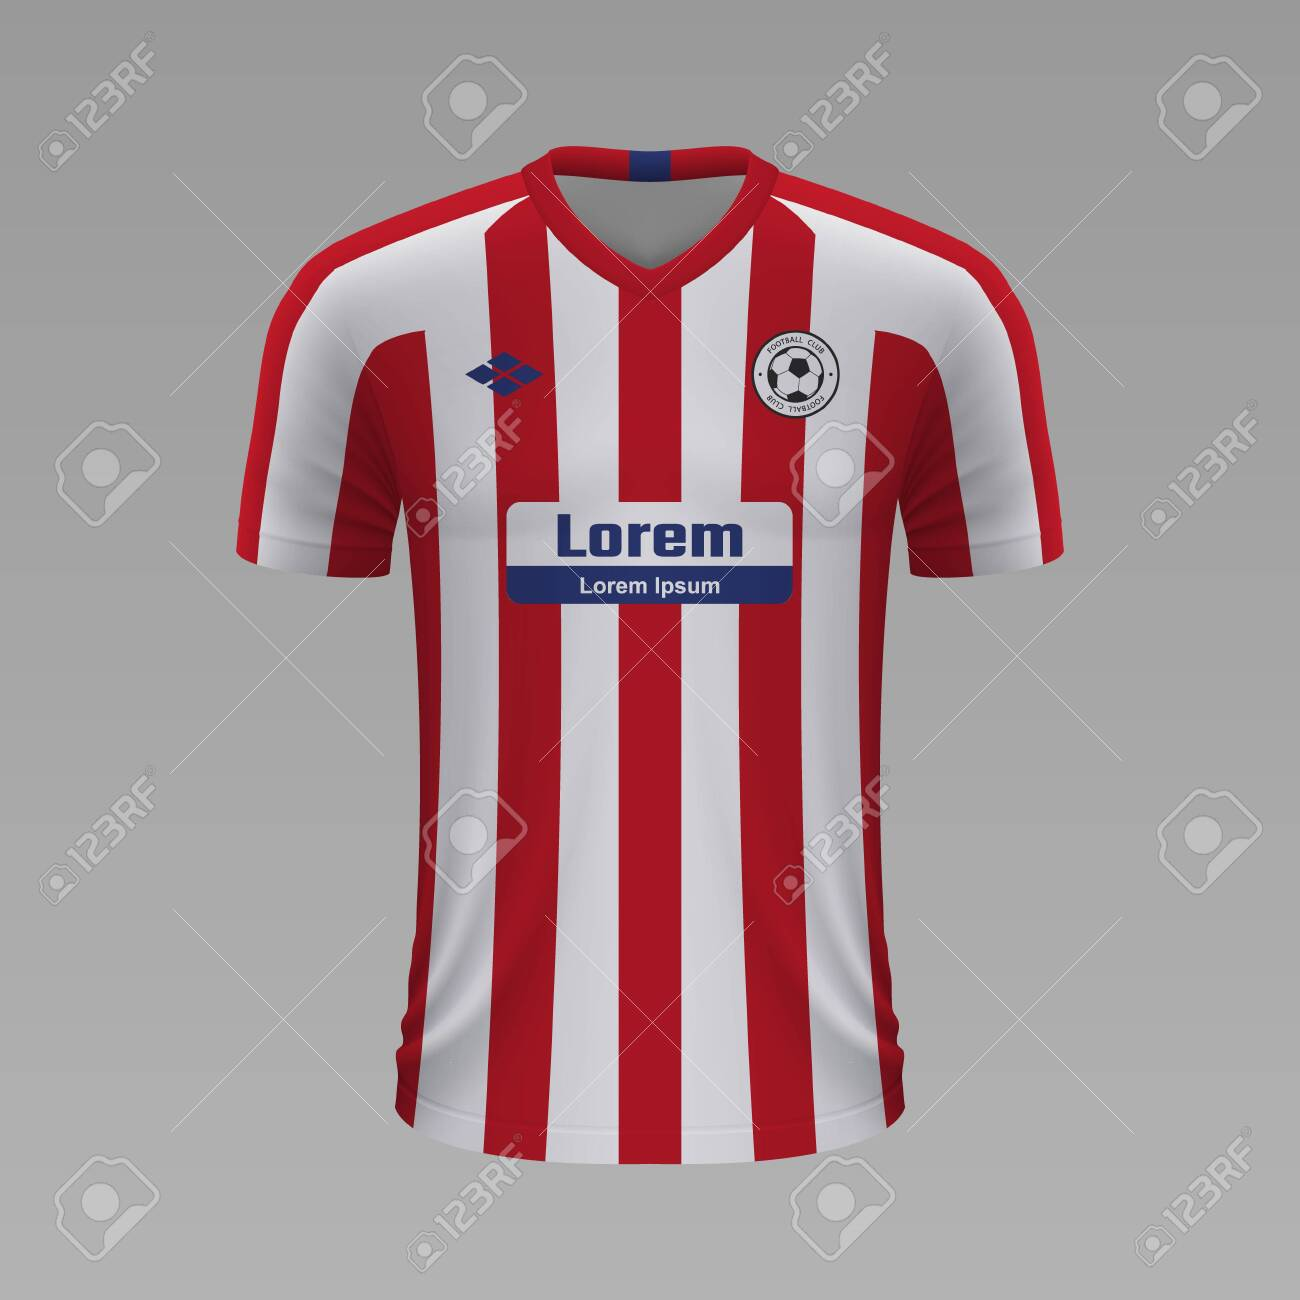 Realistic Soccer Shirt Atletico Madrid 2020 Jersey Template Royalty Free Cliparts Vectors And Stock Illustration Image 129540846